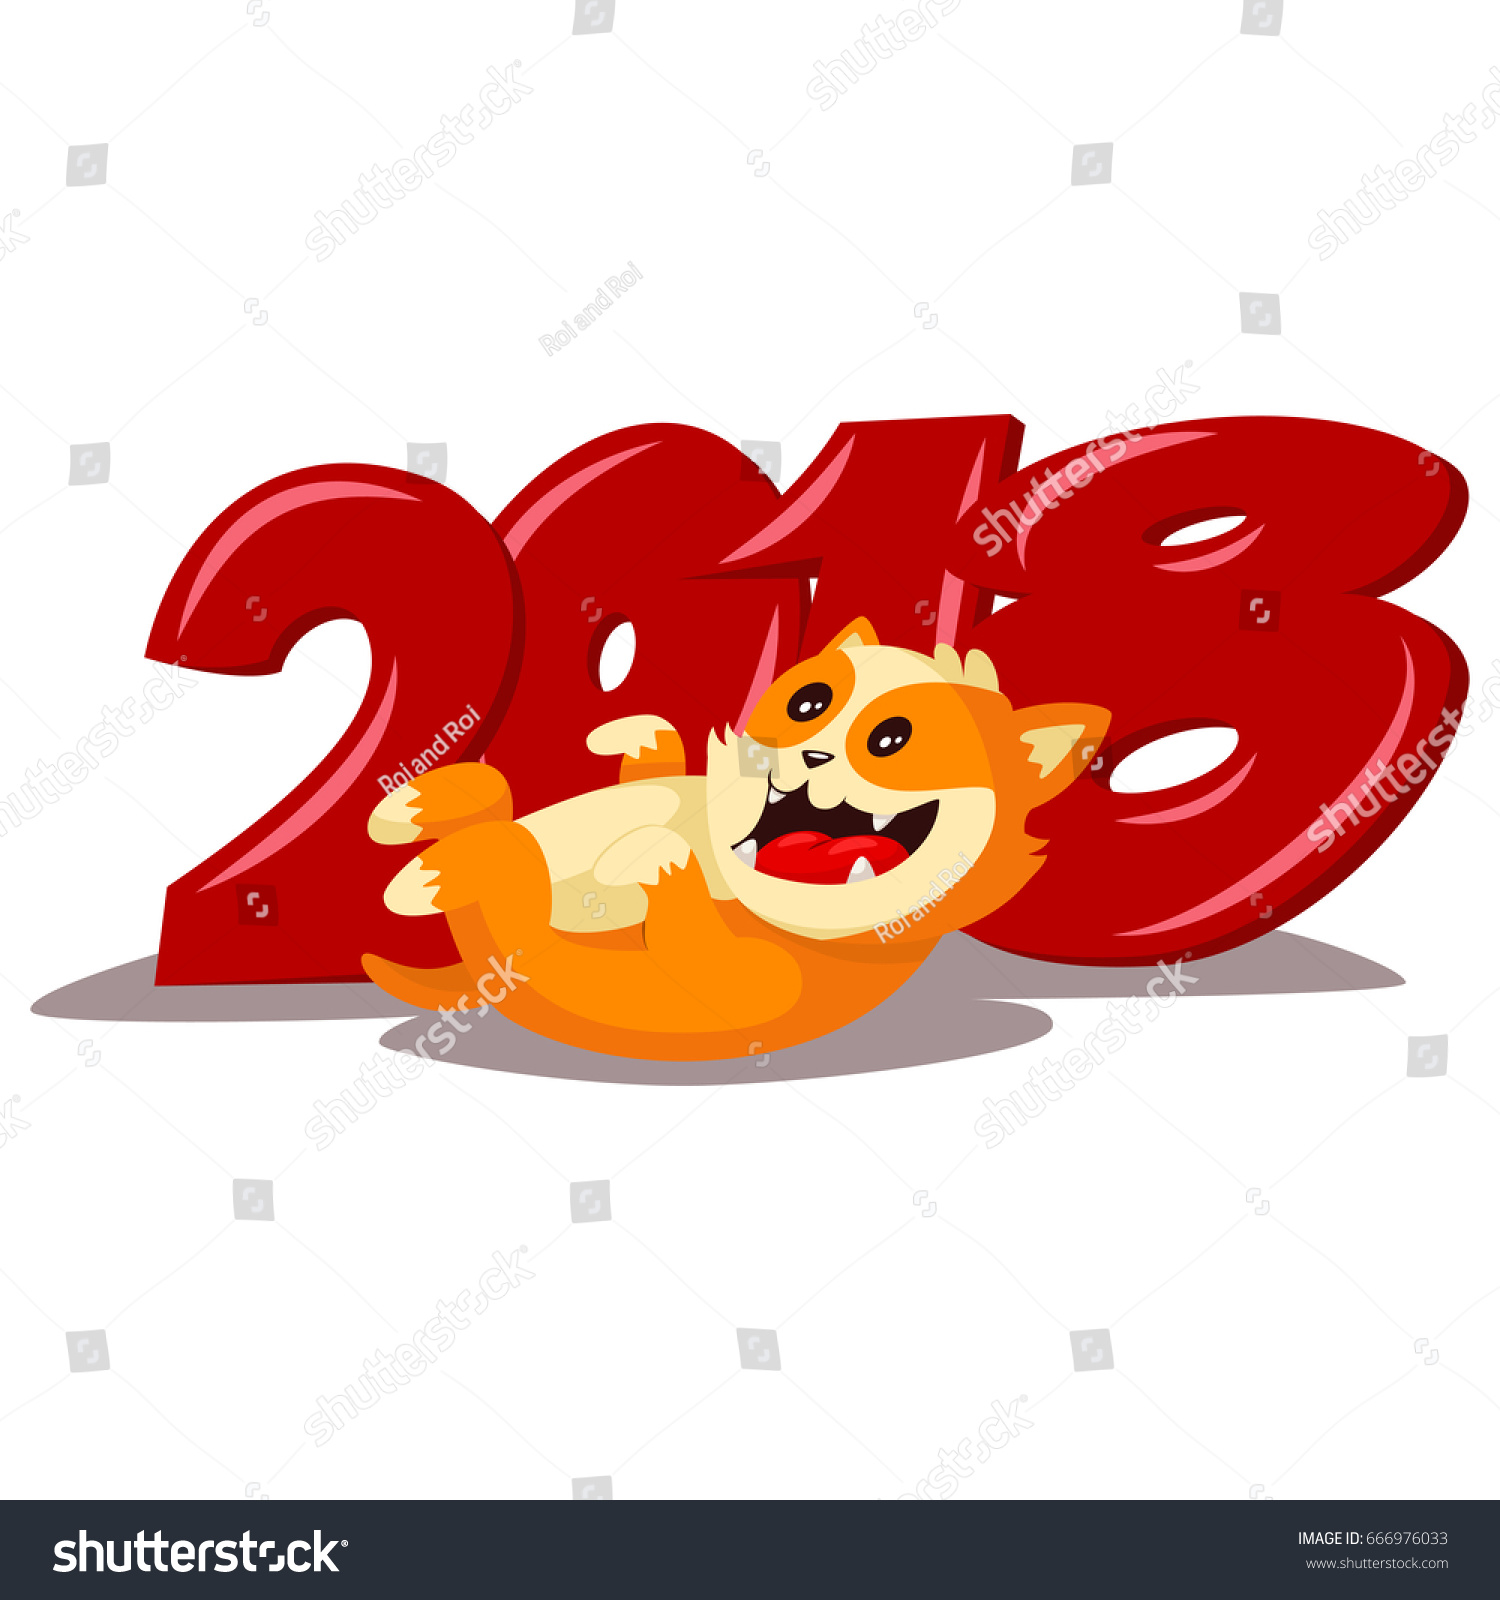 2018 chinese new year with cute cartoon yellow dog vector illustration isolated on a white